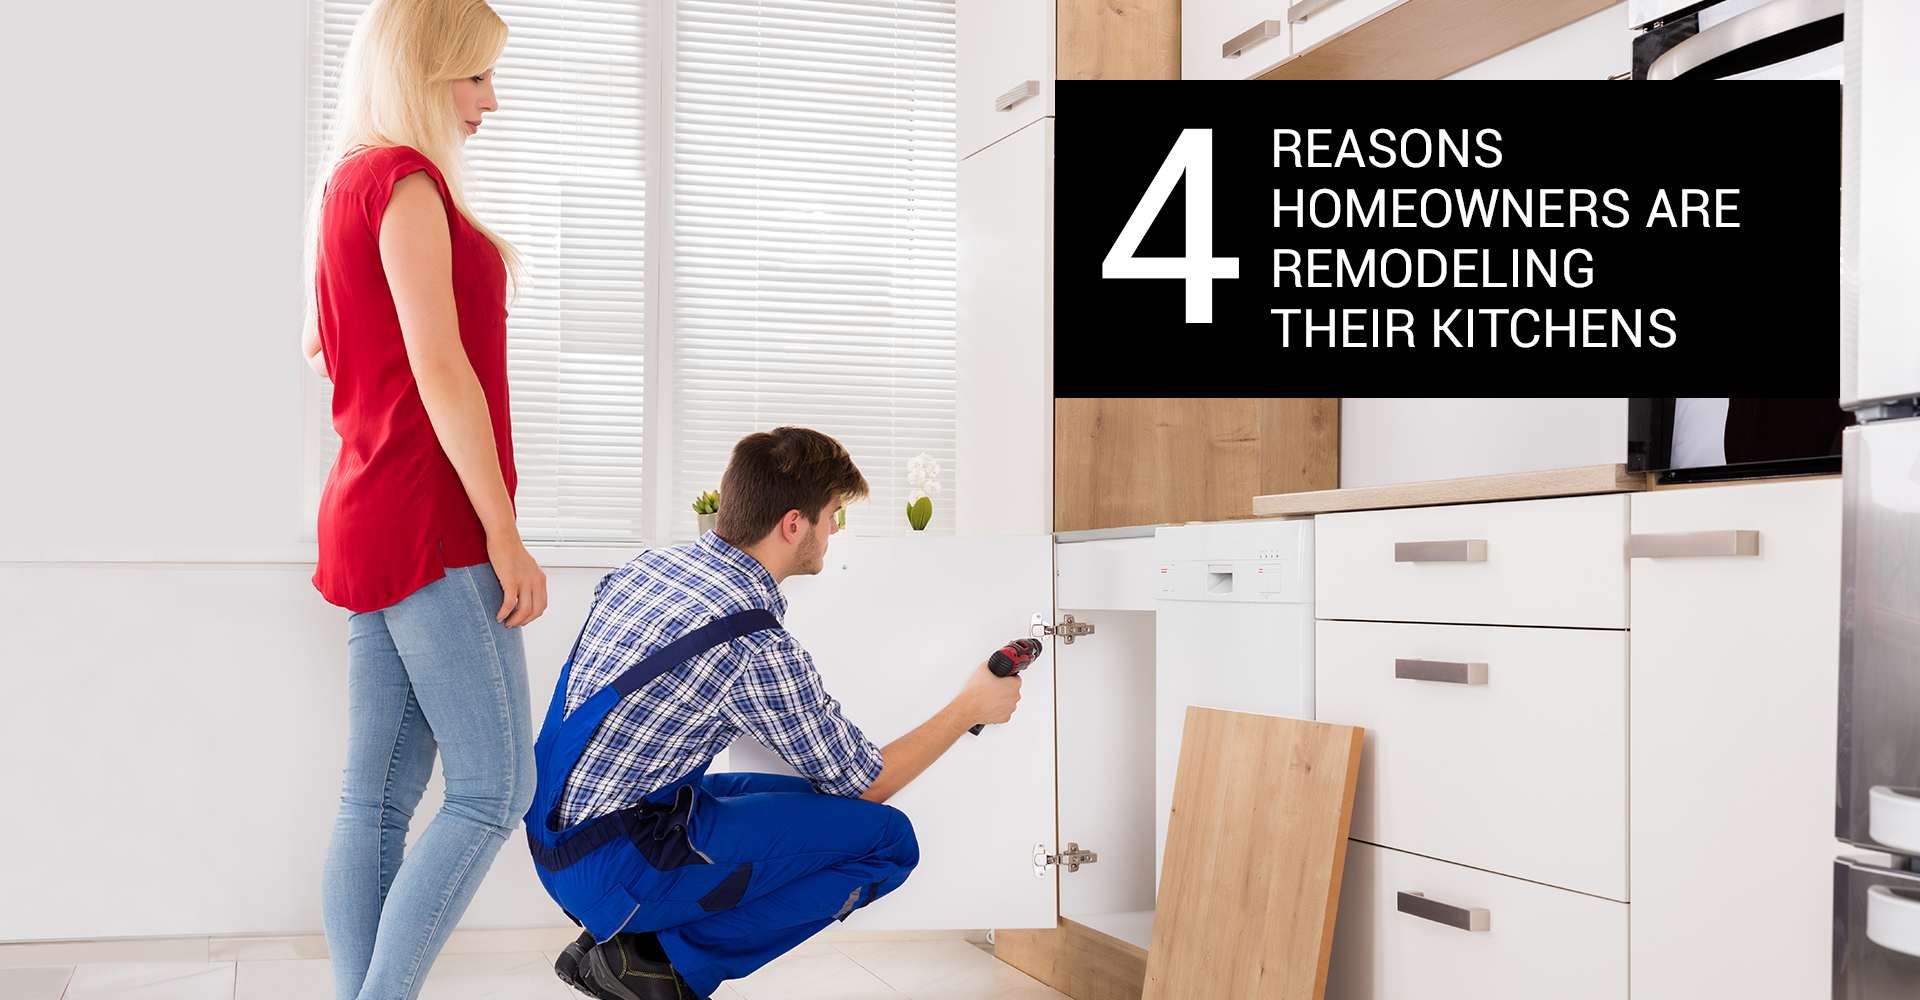 4 Reasons Homeowners are Remodeling Their Kitchens